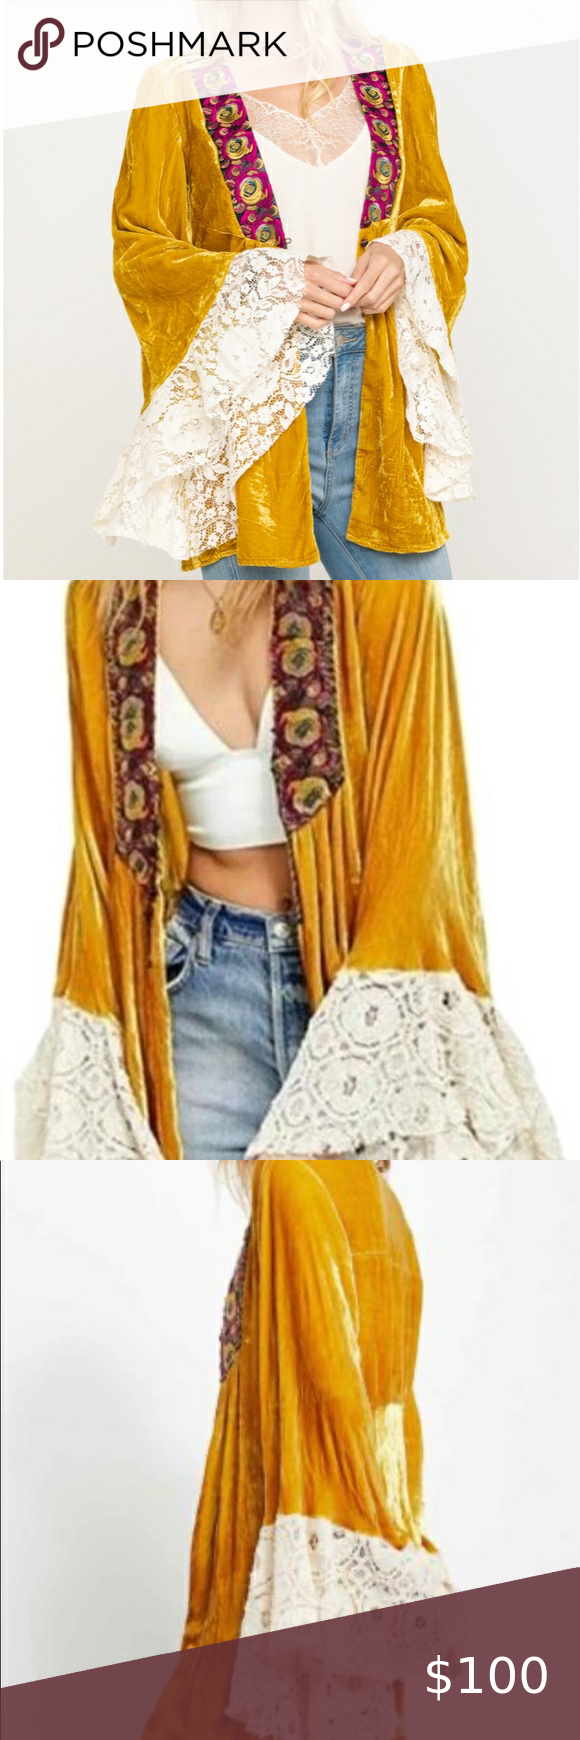 NEW WITHOUT TAGS 🌼FREE PEOPLE WANDERLUST JACKET🌼 N